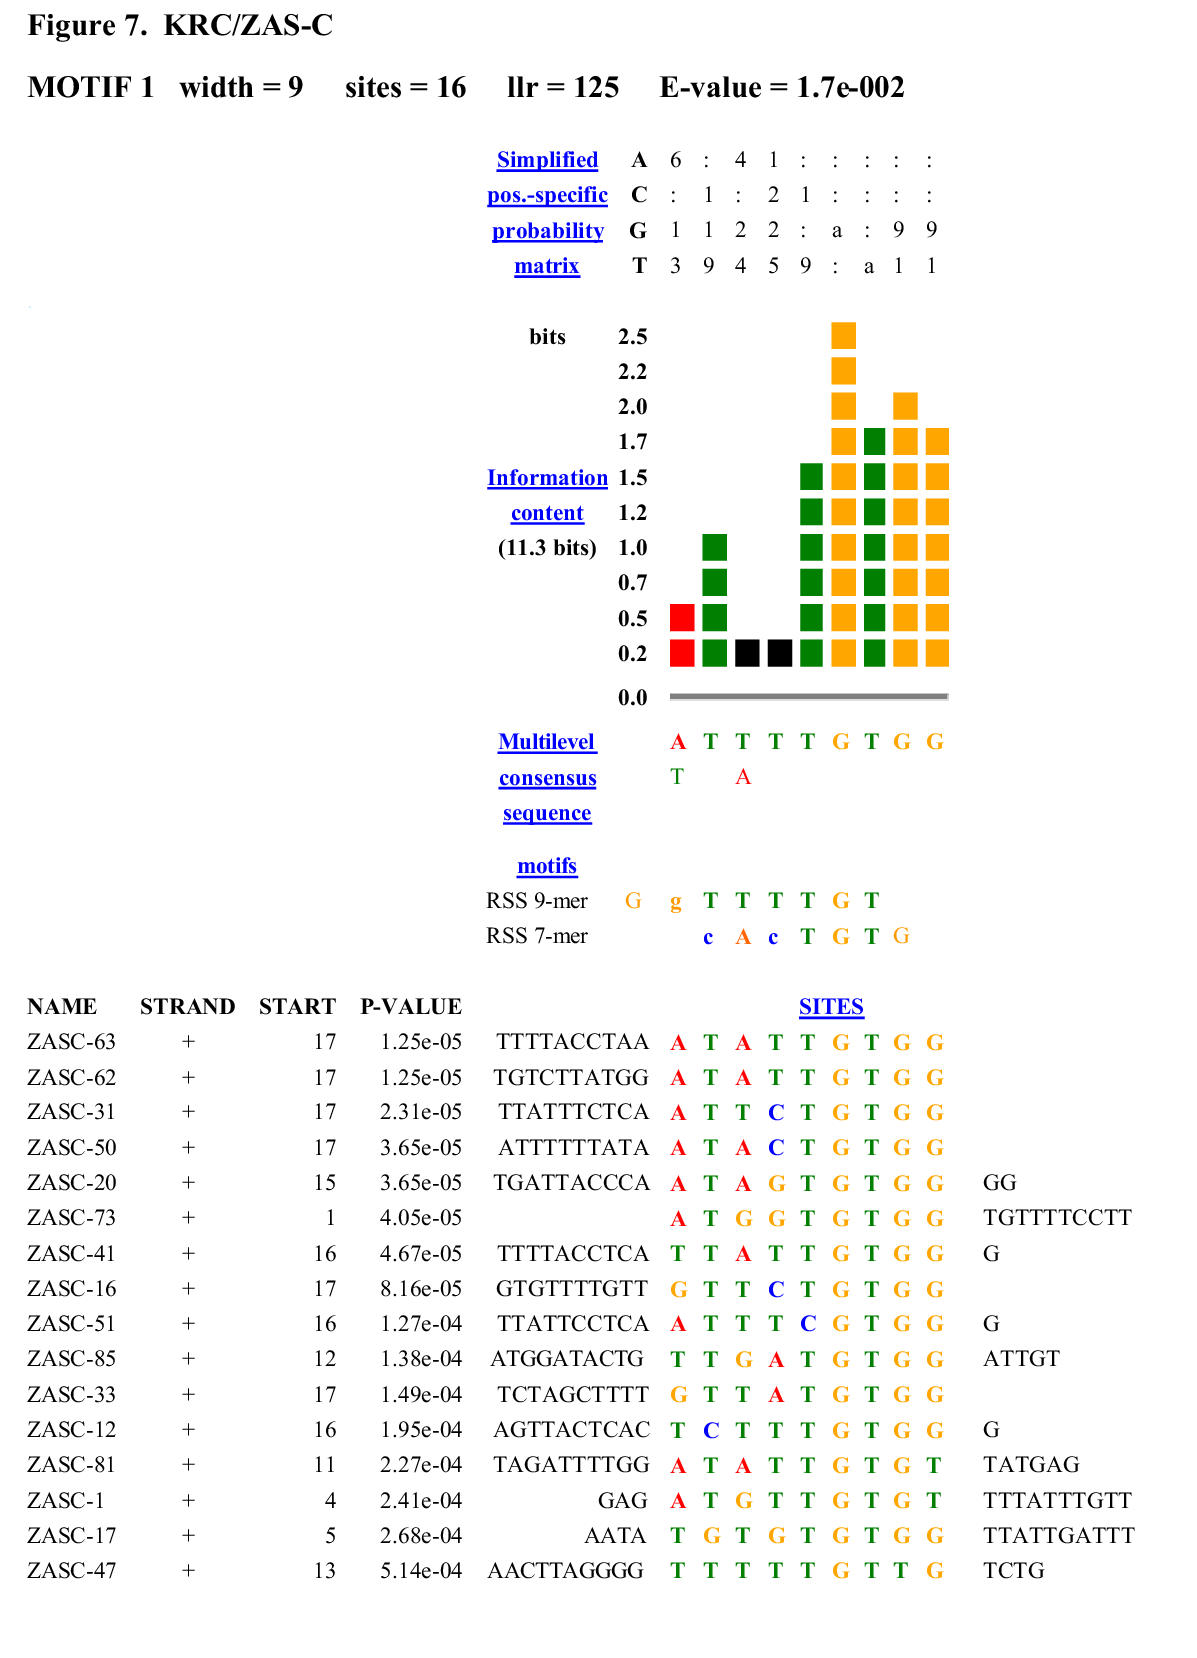 https://static-content.springer.com/image/art%3A10.1186%2F1471-2172-3-10/MediaObjects/12865_2002_Article_22_Fig7_HTML.jpg